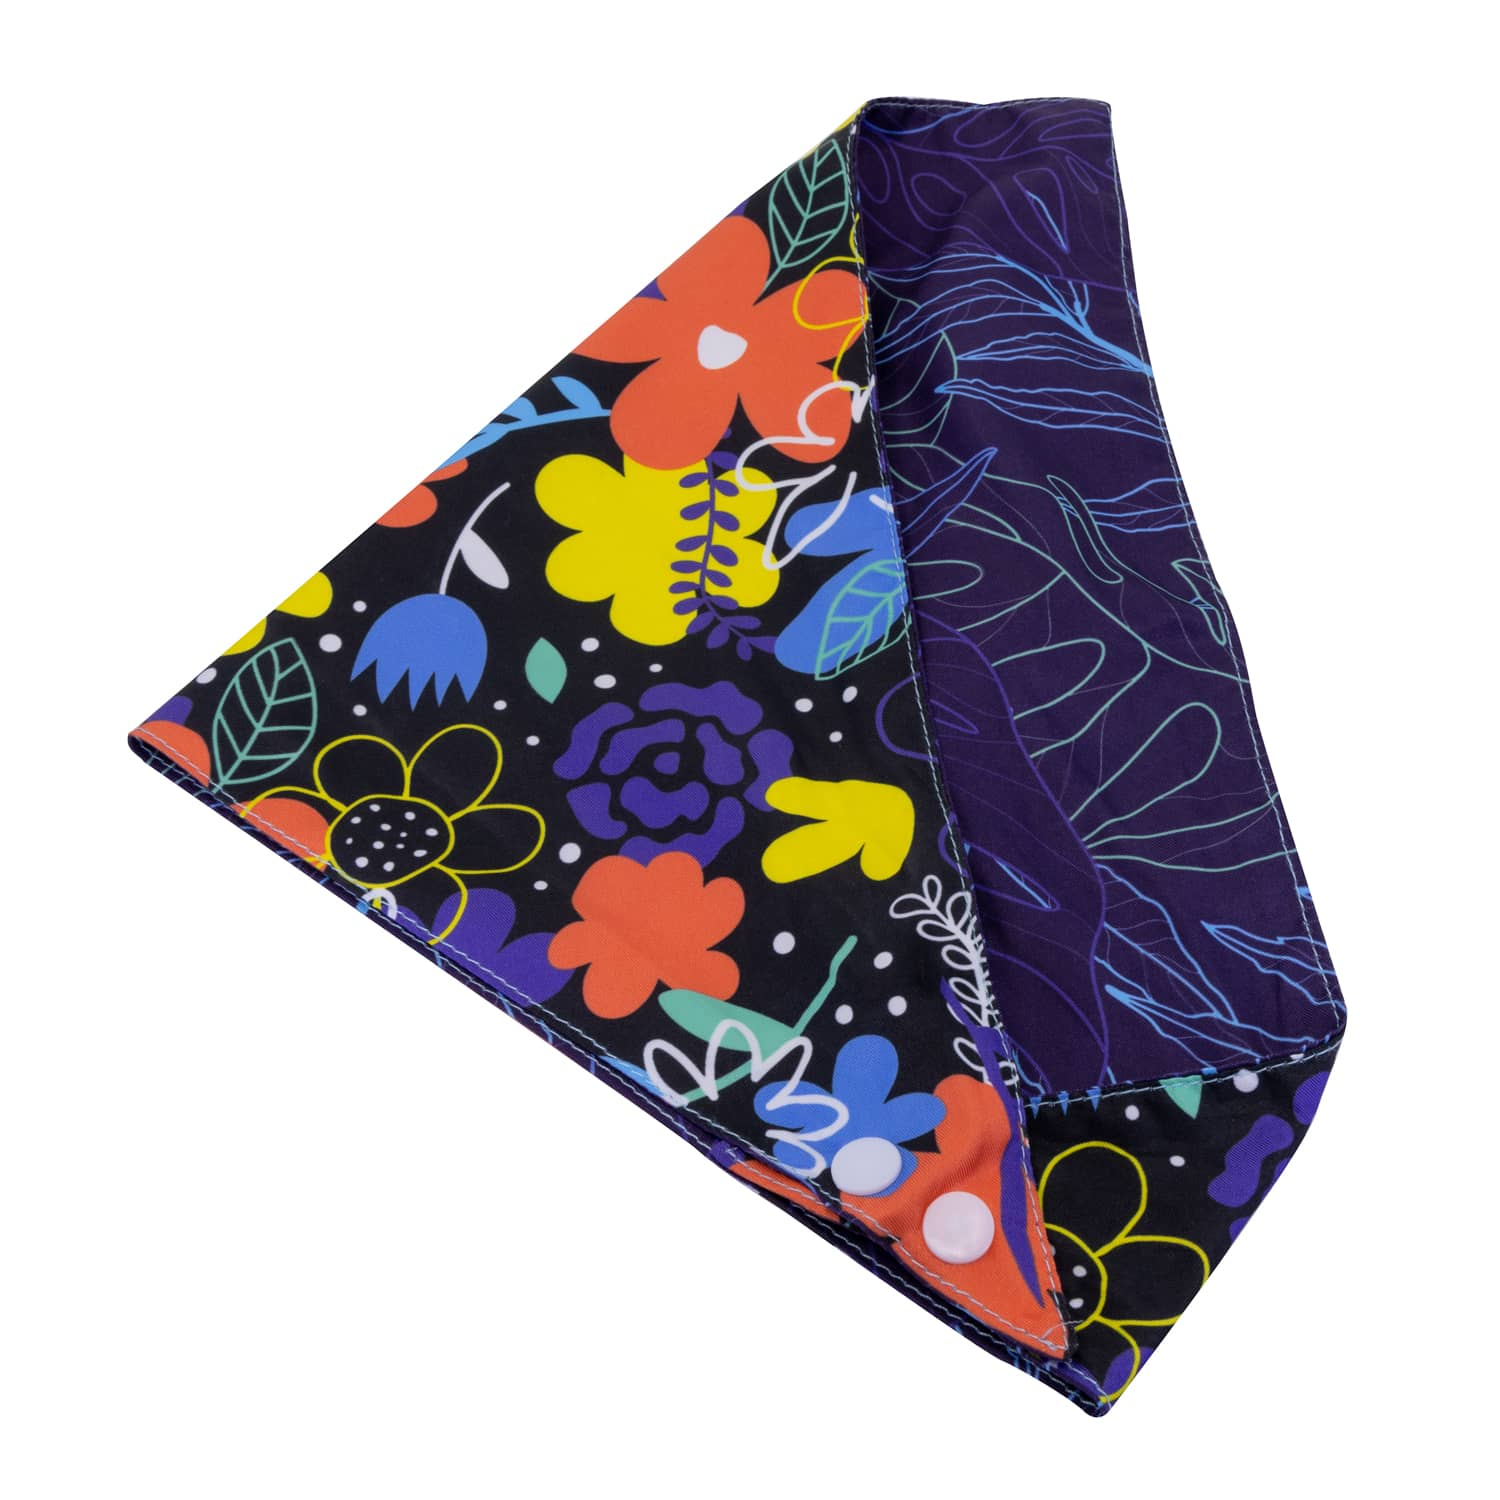 Nights-a-Bloom Dog Bandana